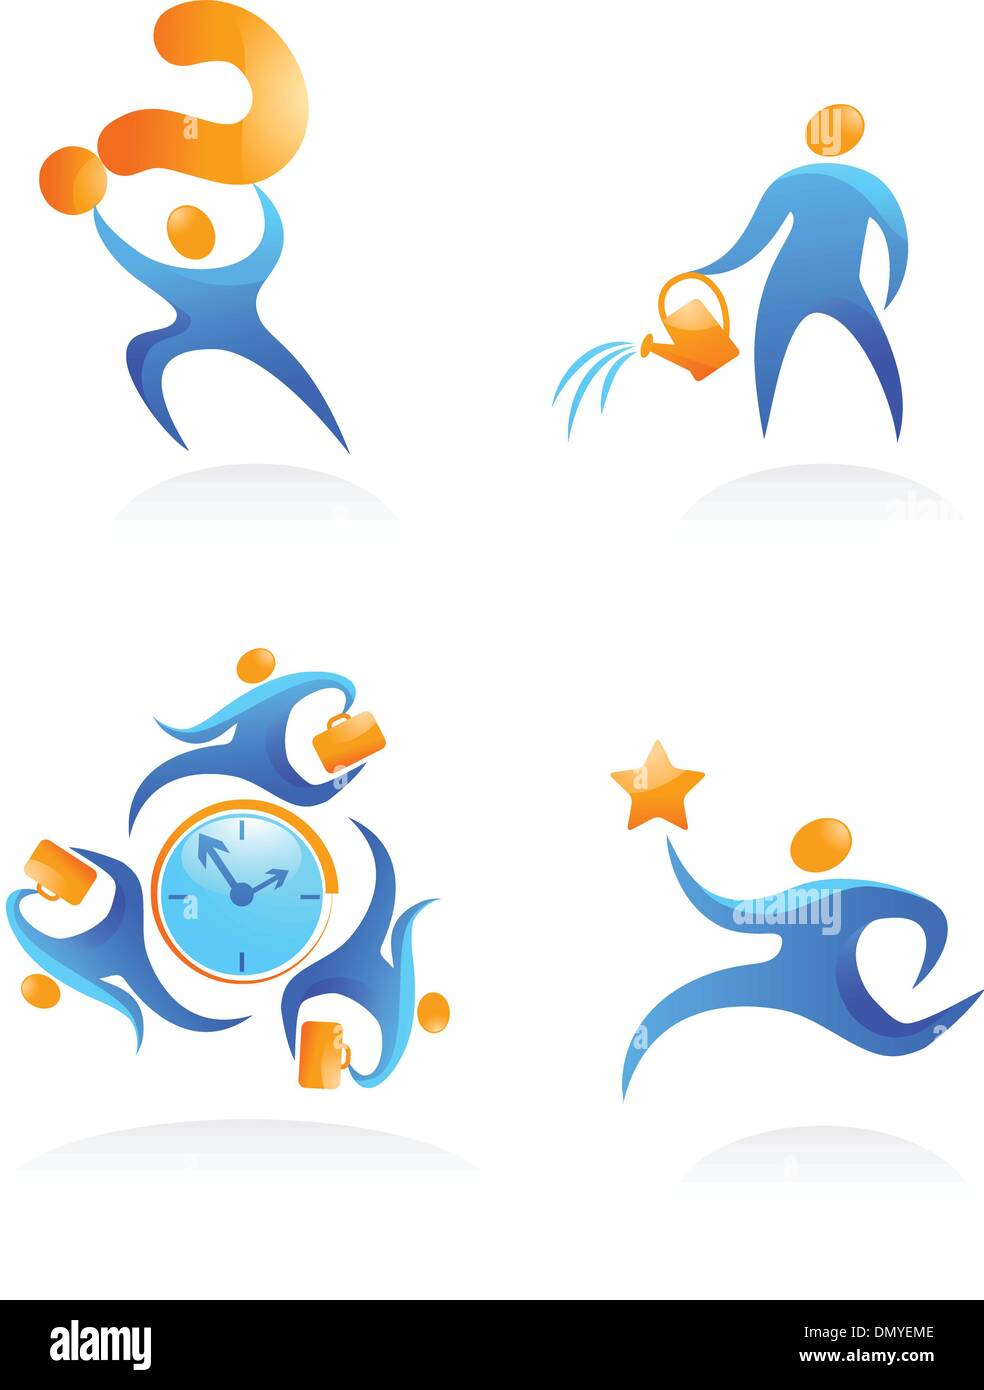 Collection of abstract people logos - 12 - Stock Image